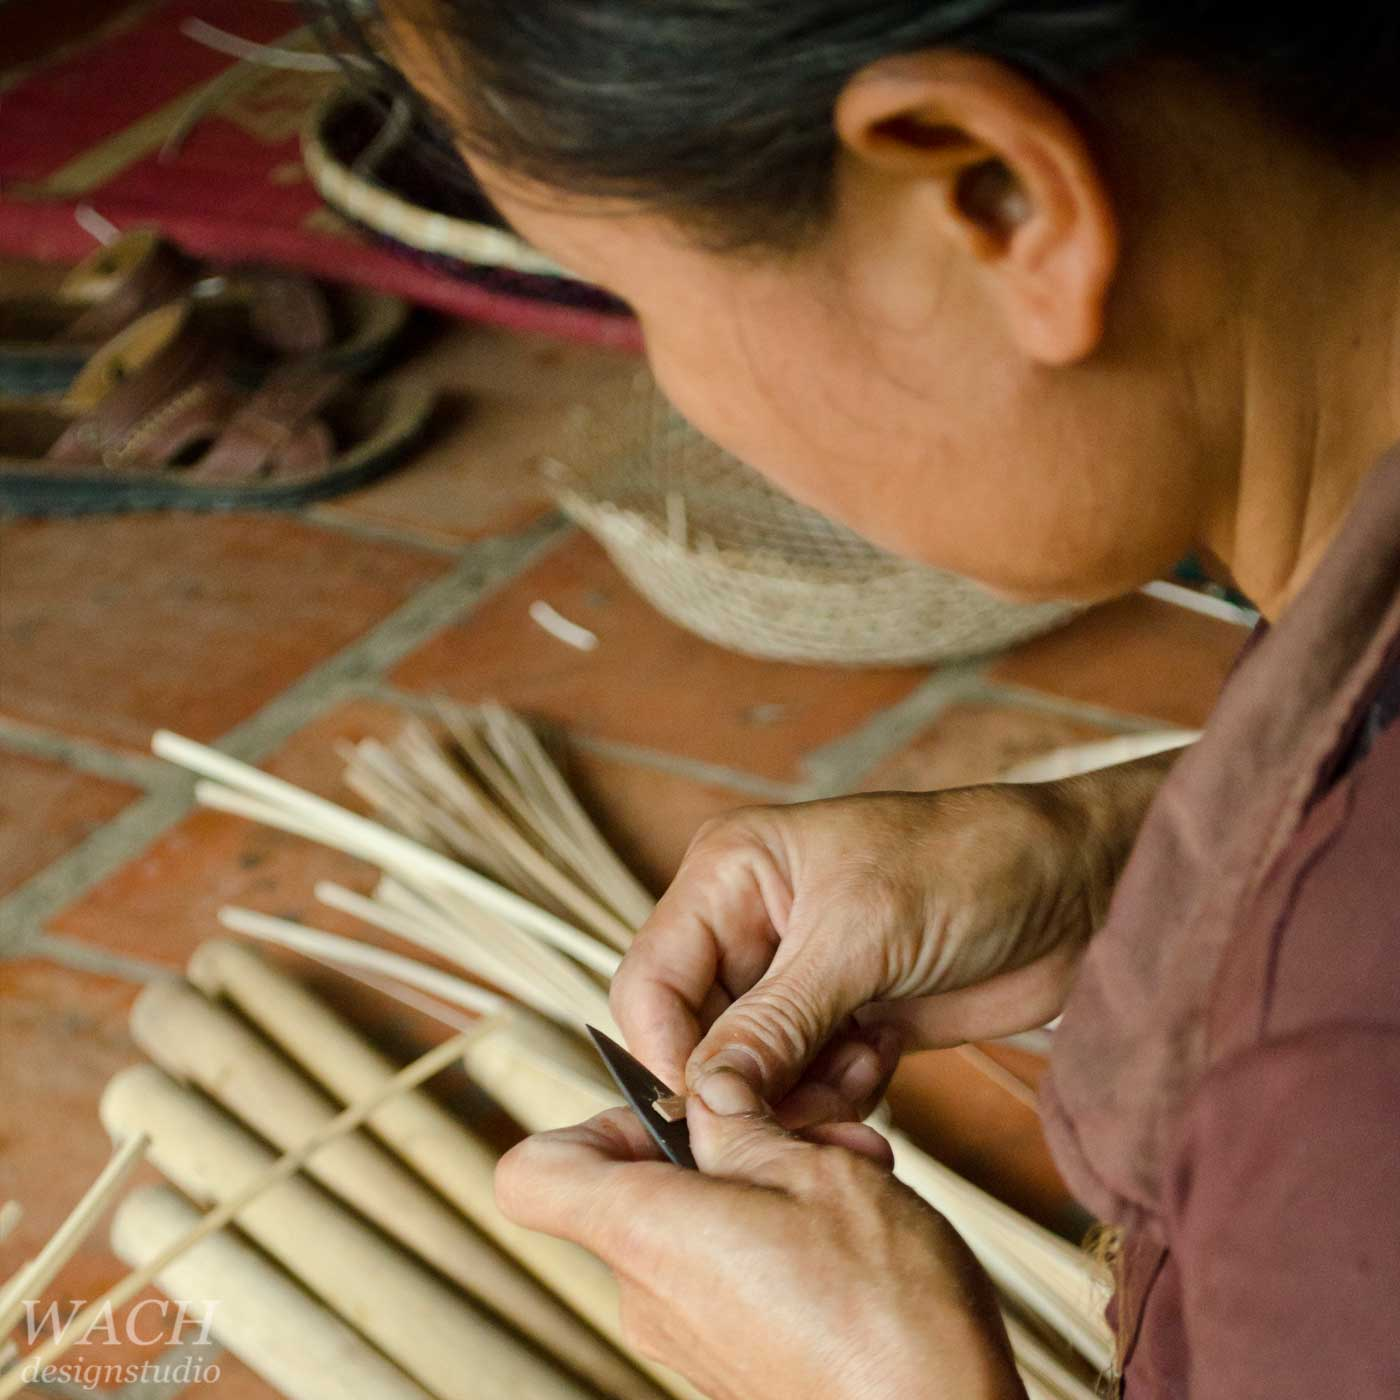 Vietnamese women crafting bamboo stripes for basket weaving